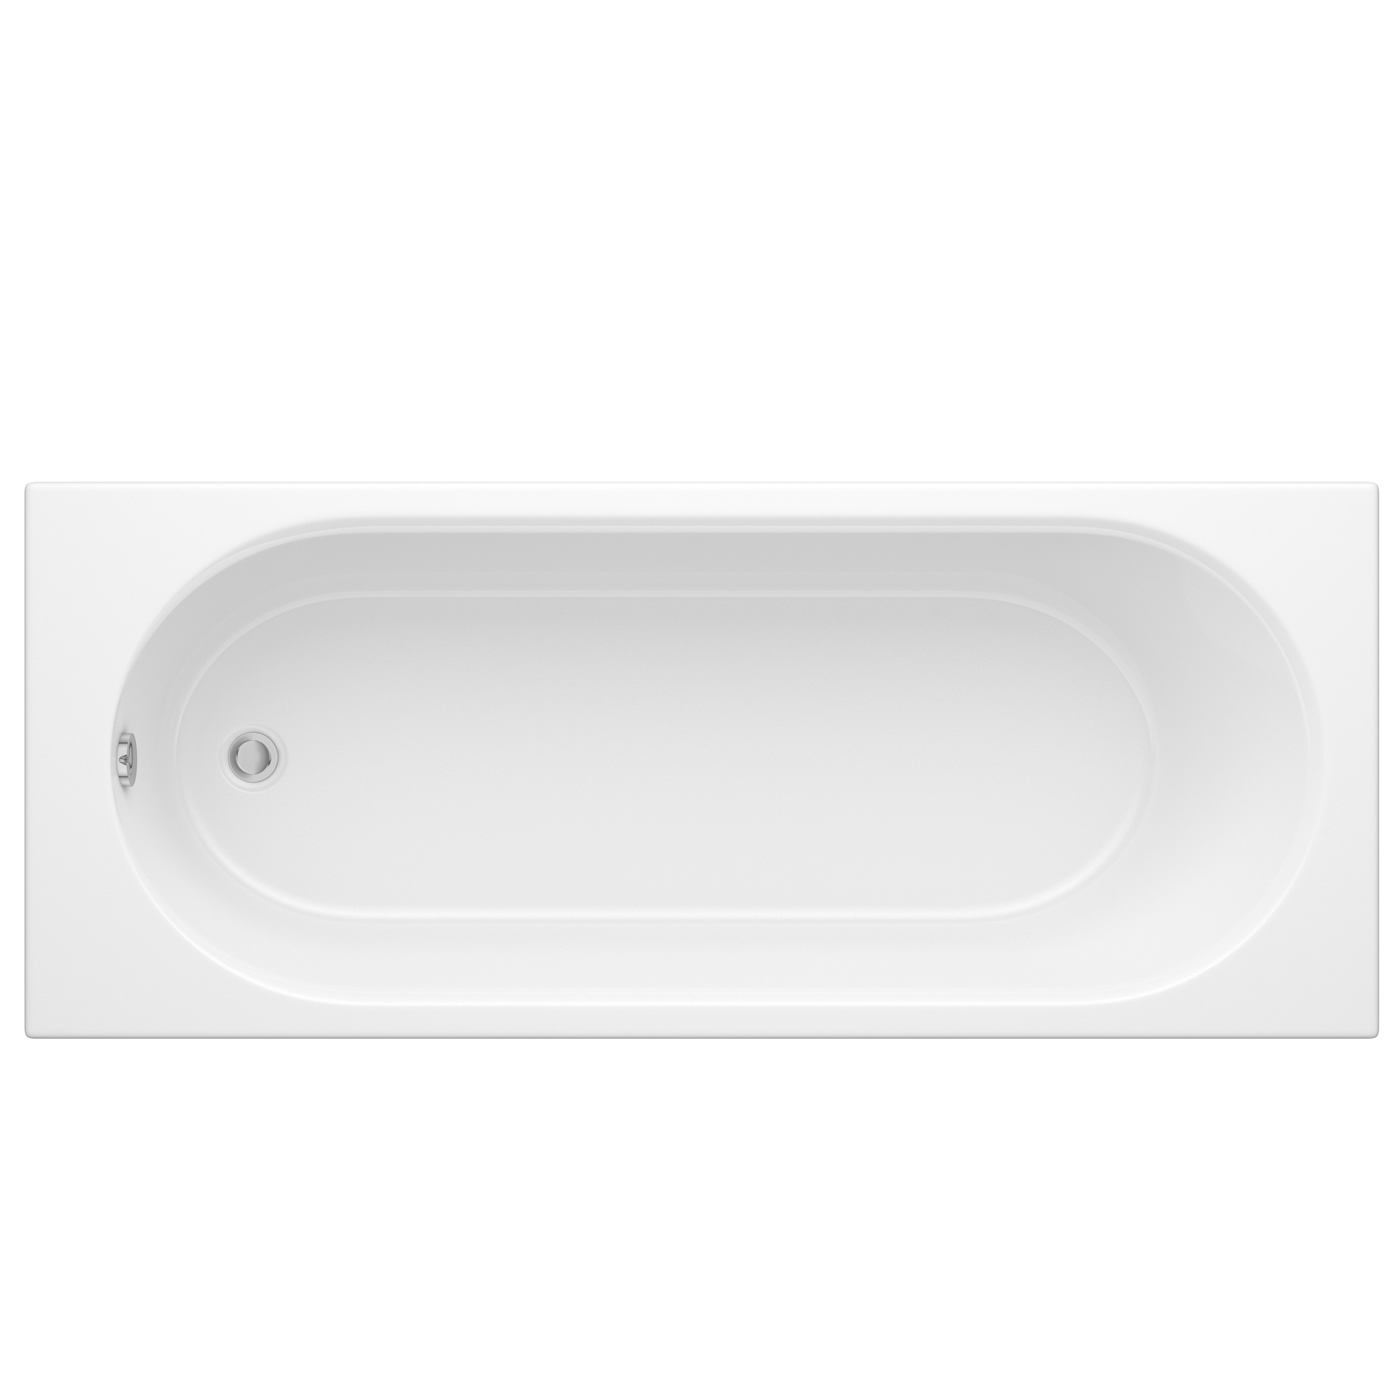 Milano - 1800mm x 800mm Round Single Ended Standard Bath